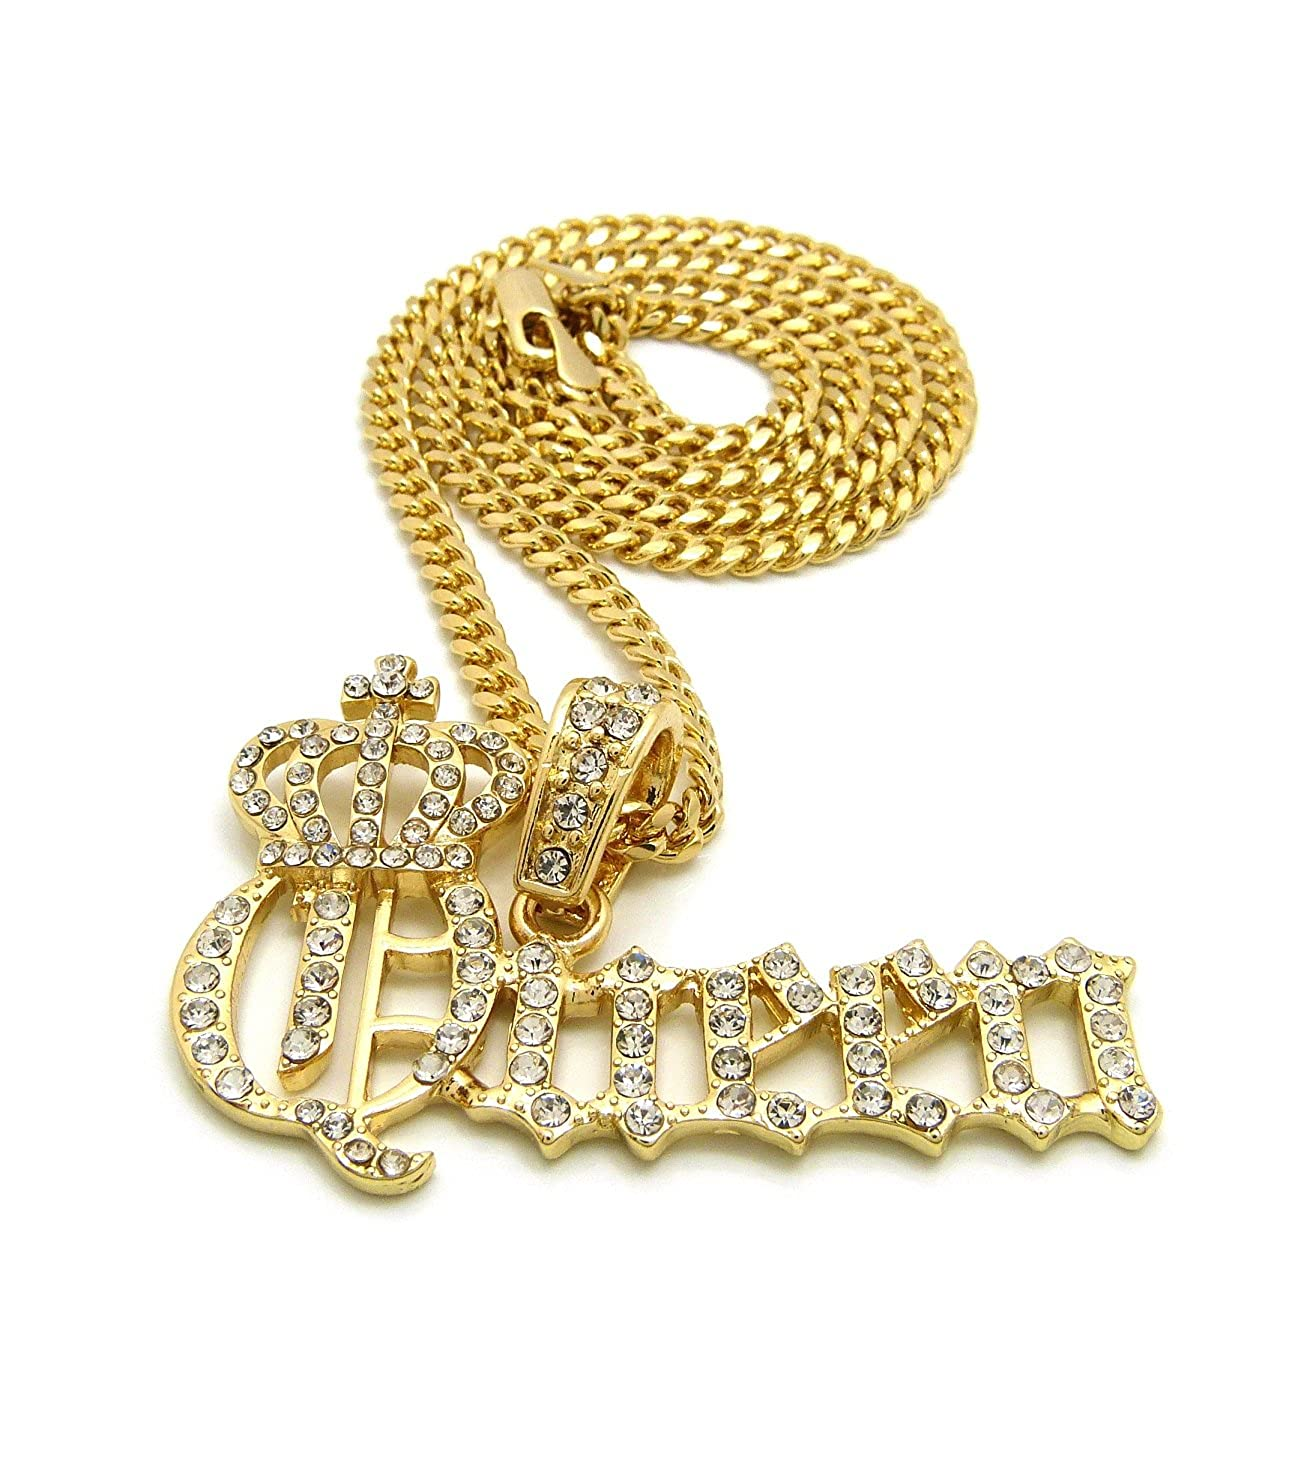 Stone Stud Crowned Queen Pendant with 3mm Cuban Chain Necklace in Gold-Tone